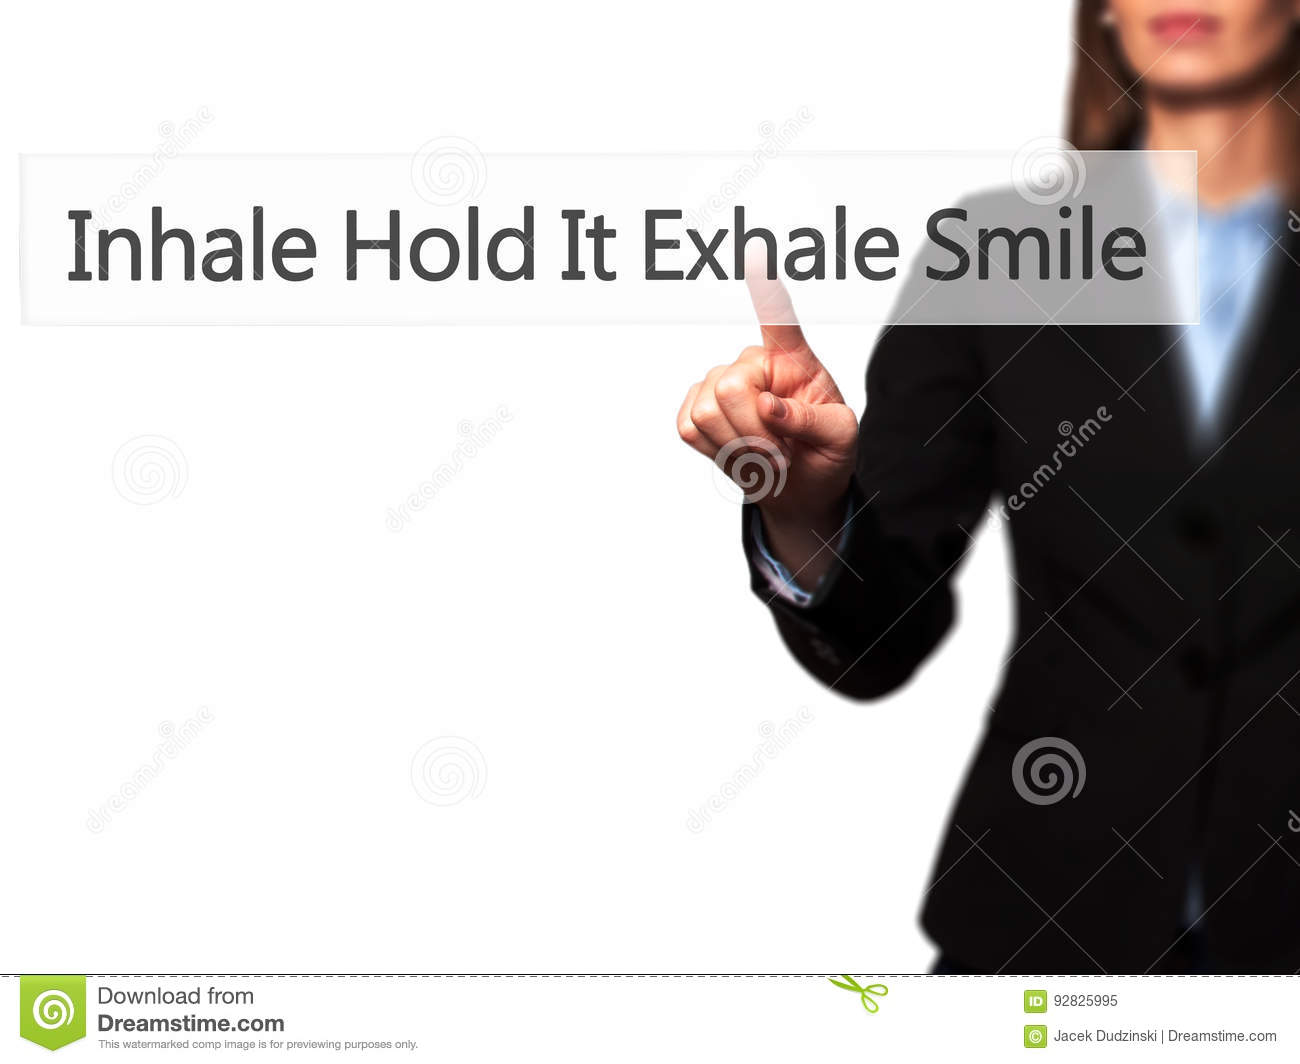 Inhale Exhale Stock Images Download 735 Photos Inhalation And Exhalation Diagram On Inhaling Exhaling